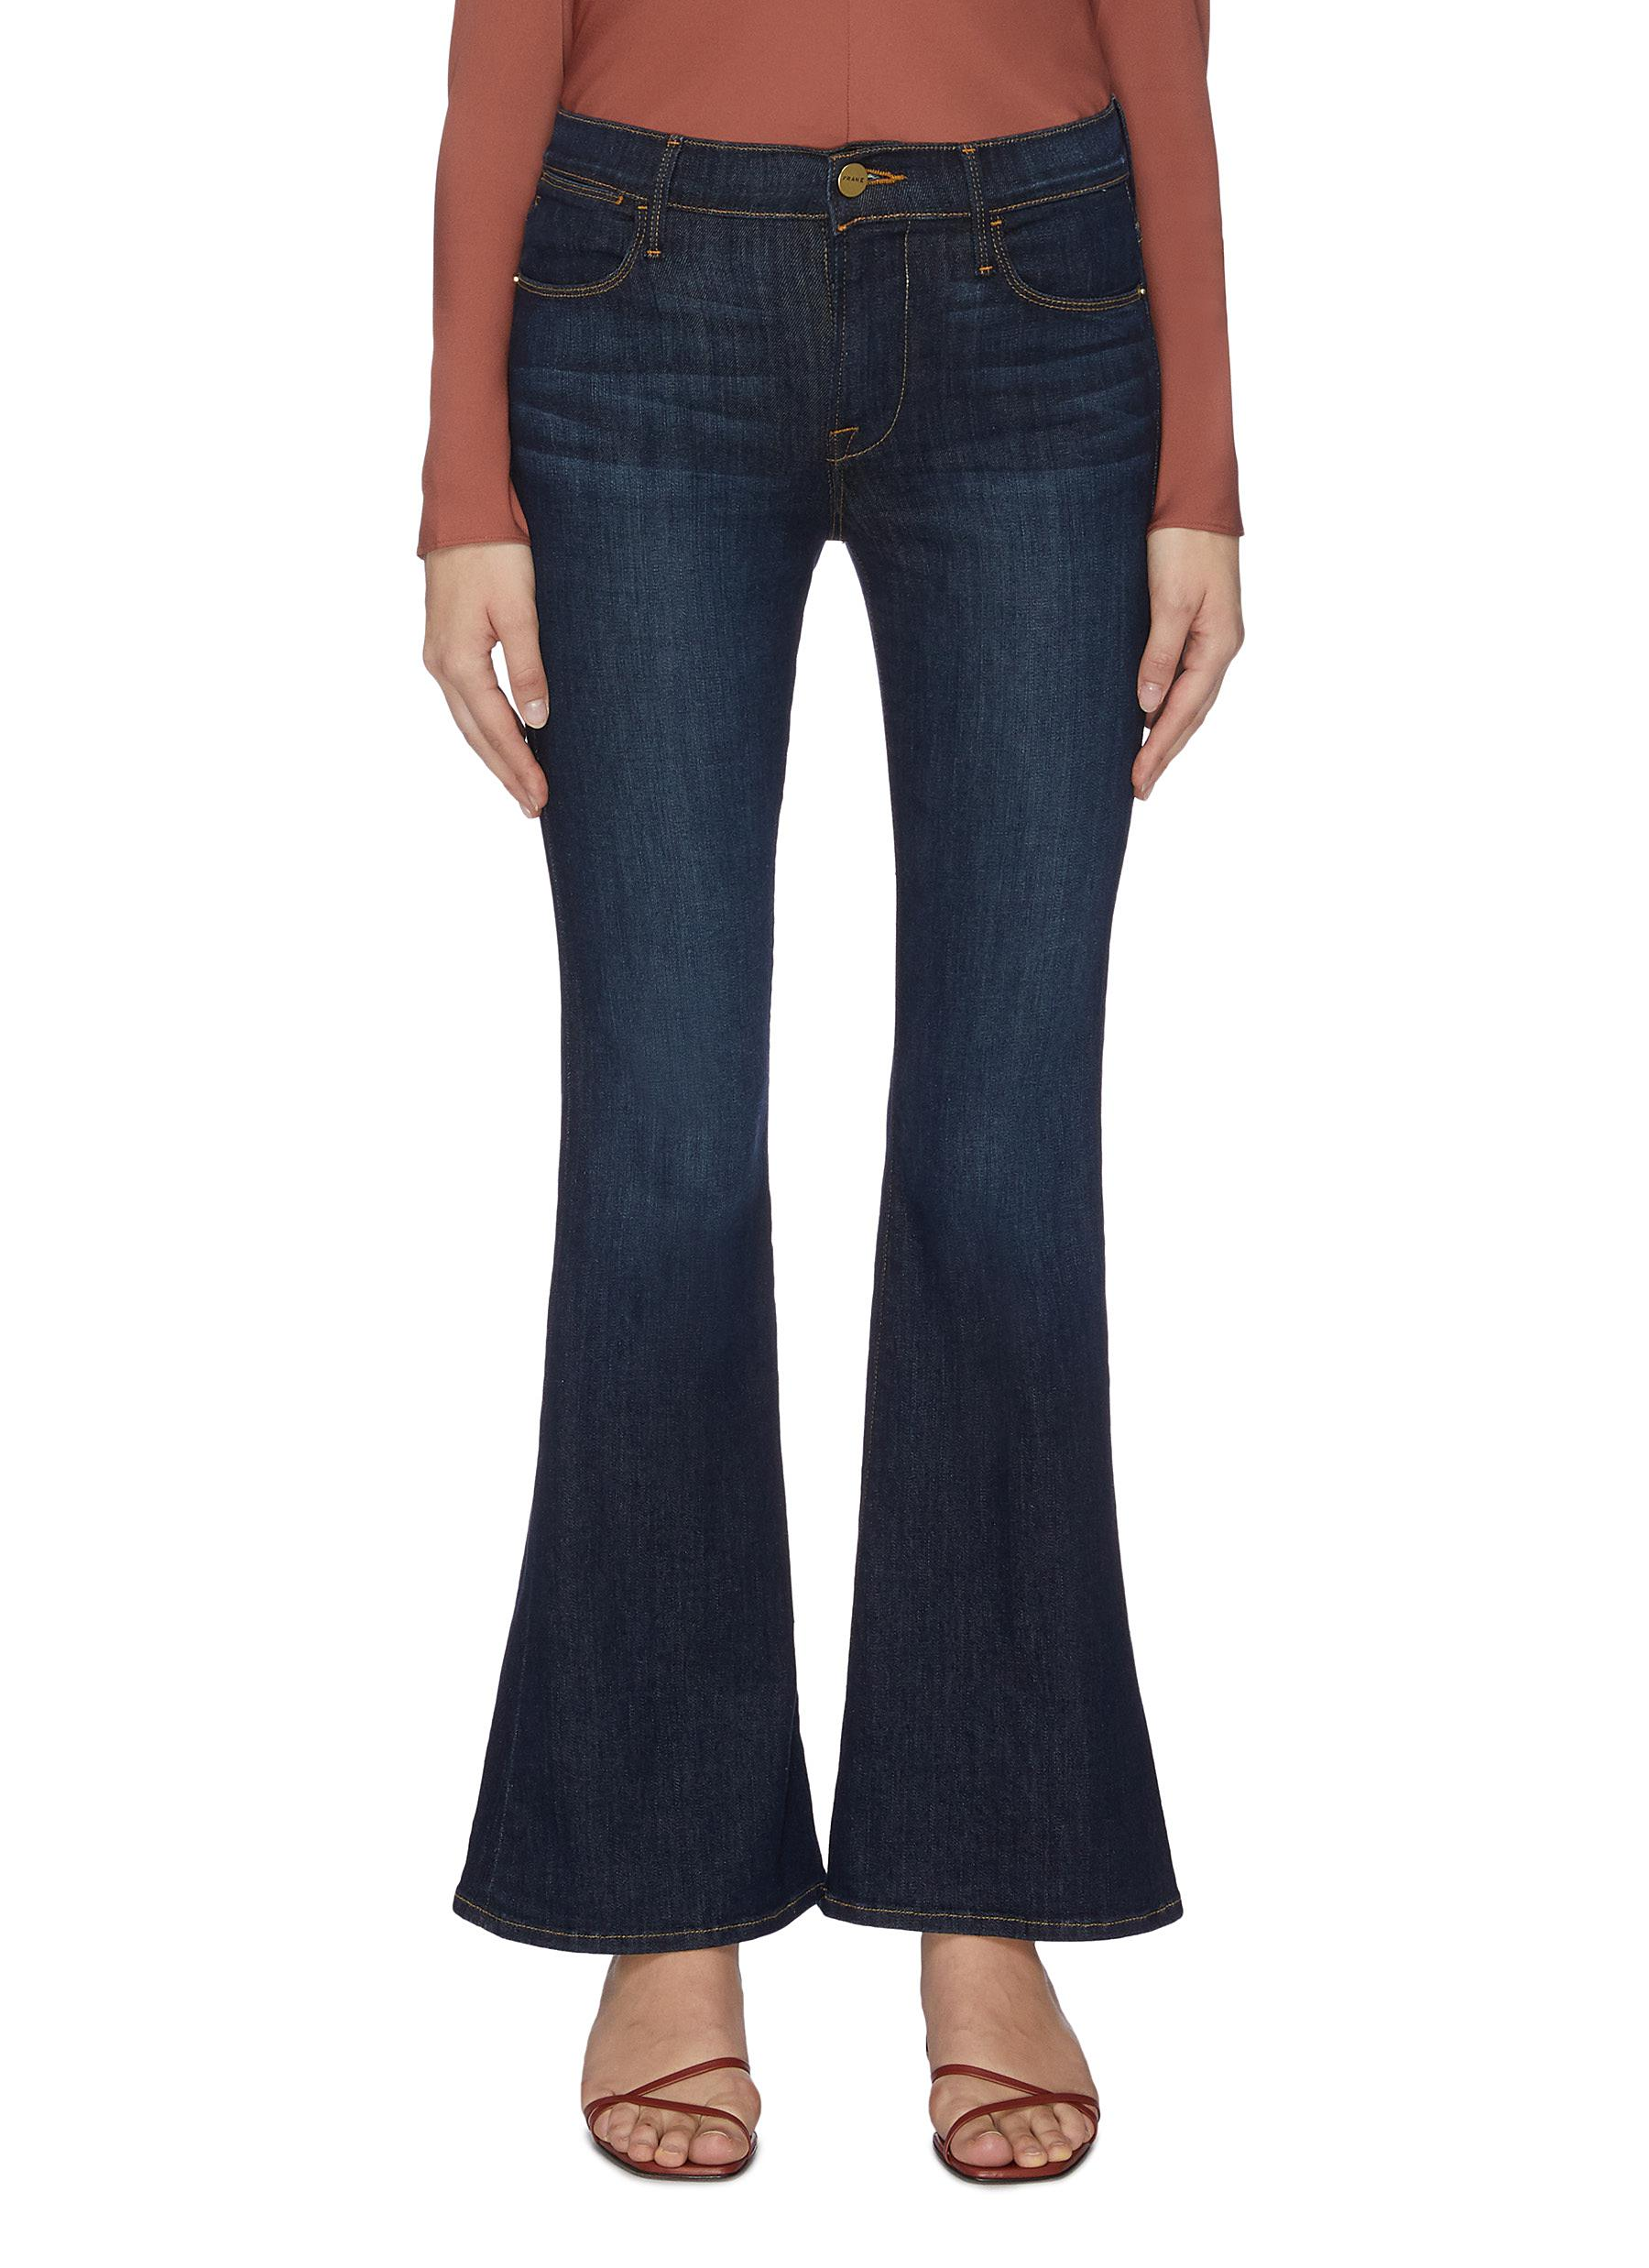 Buy Frame Denim Jeans 'Le Pixie High Flare' jeans